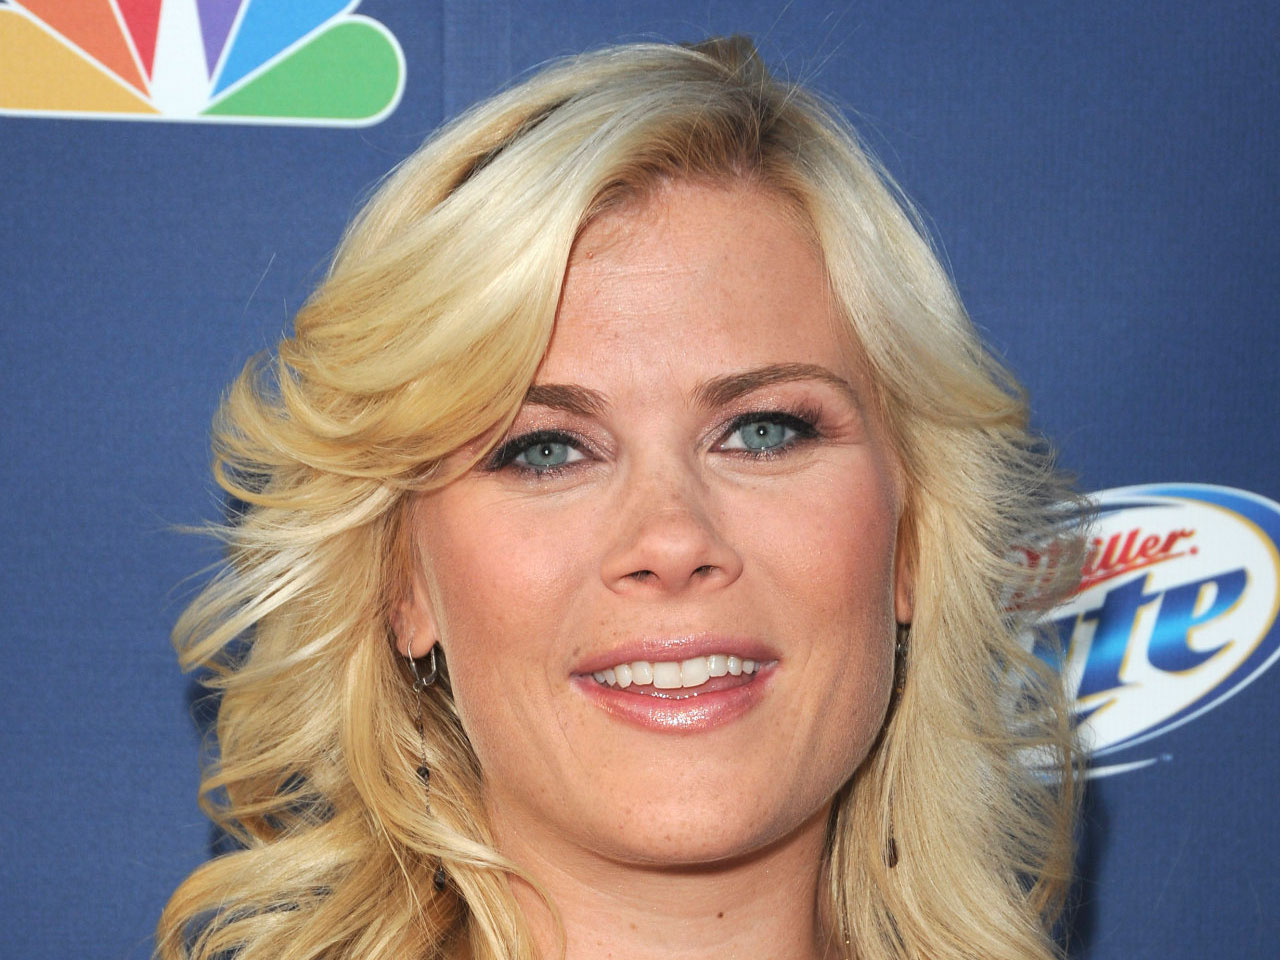 alison sweeney movies and tv showsalison sweeney 2016, alison sweeney height weight, alison sweeney husband, alison sweeney movies and tv shows, alison sweeney instagram, alison sweeney, alison sweeney twitter, alison sweeney makeup, alison sweeney net worth, alison sweeney biggest loser, alison sweeney days of our lives, alison sweeney weight loss, alison sweeney movies, alison sweeney returning to days, alison sweeney measurements, alison sweeney diet, alison sweeney hot, alison sweeney hallmark movies, alison sweeney weight loss diet, alison sweeney leaving biggest loser